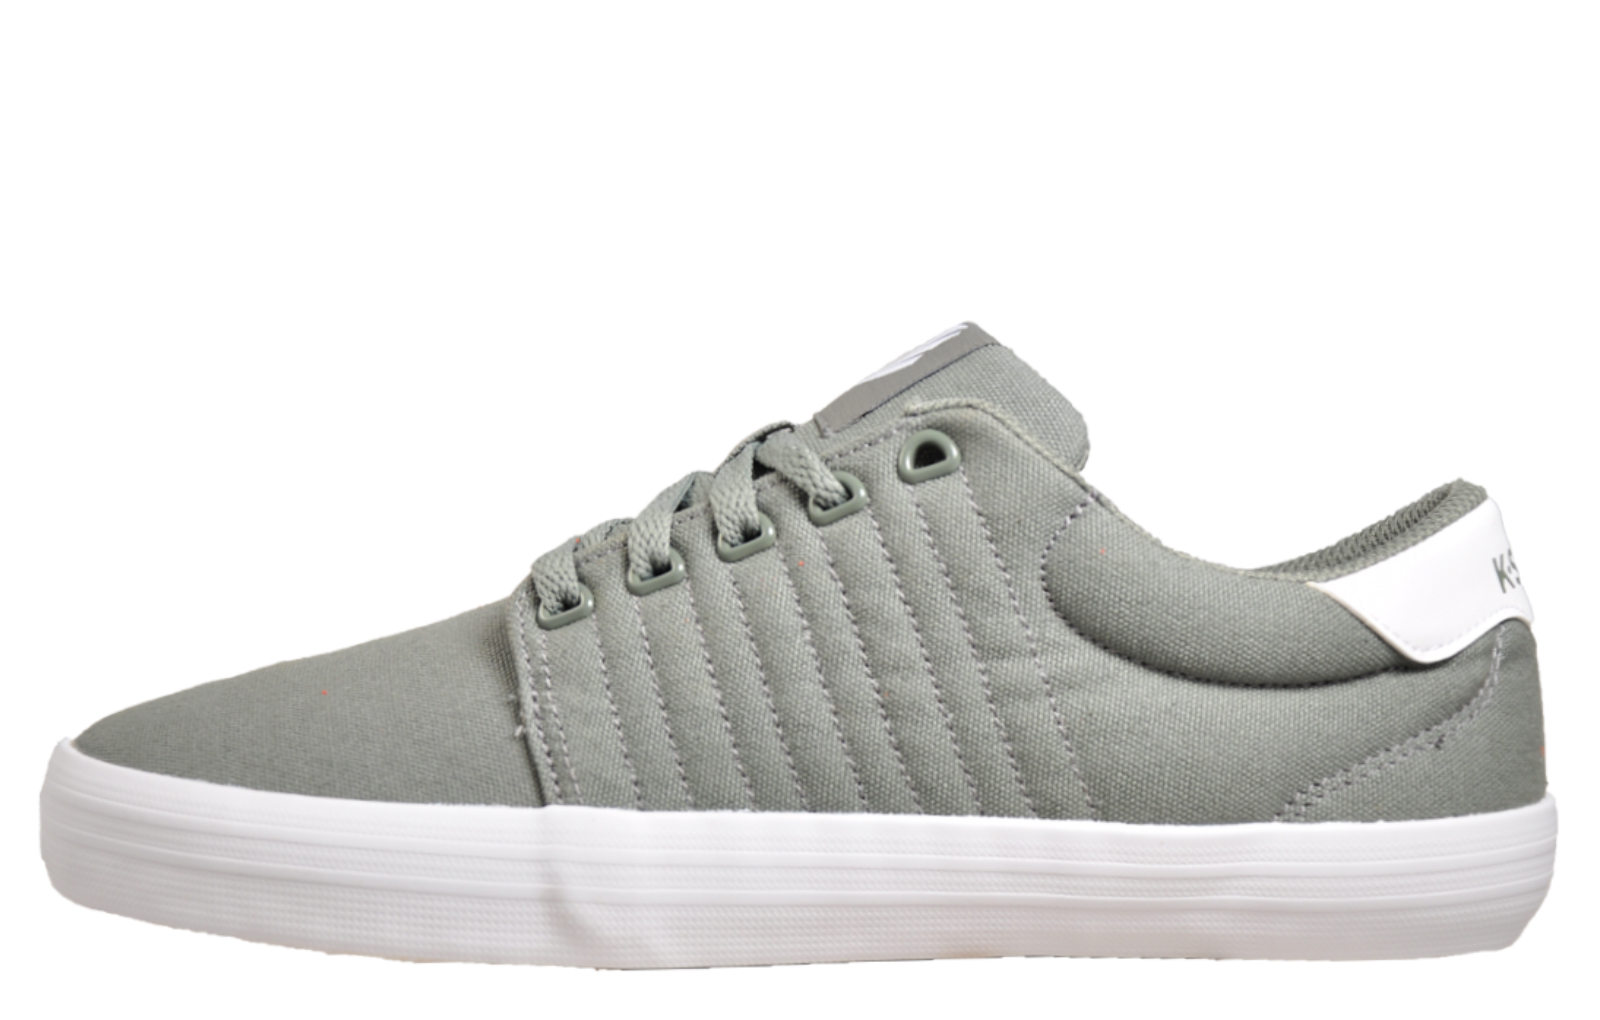 K Swiss Backspin Mens - KS181180